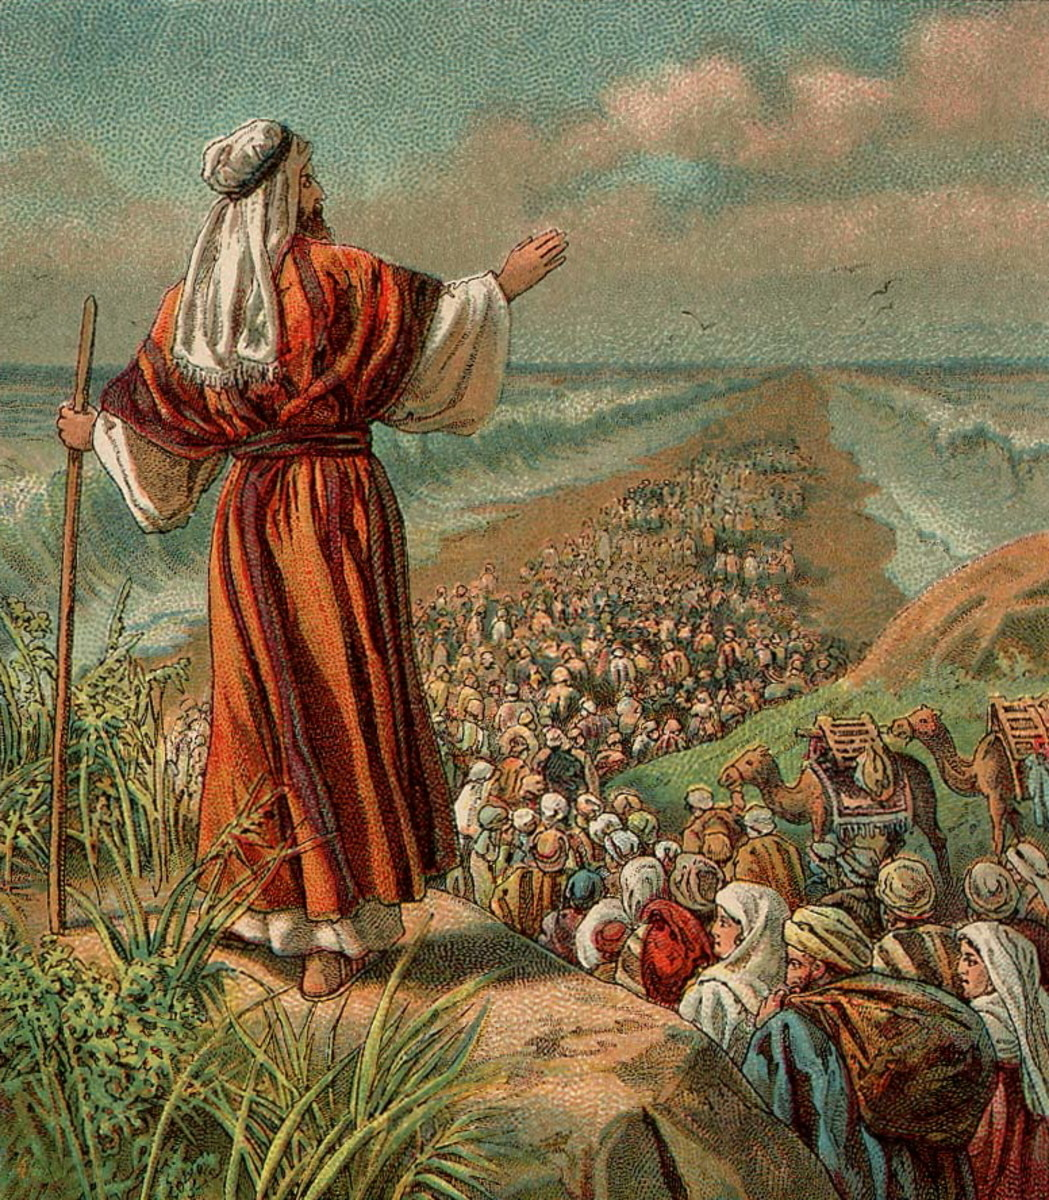 The Exodus Of The Jewish Slaves From Egypt. The Red Sea Miraculously Parted To Allow Their Safe Passage While Drowning The Egyptian Soldiers Pursuing Them